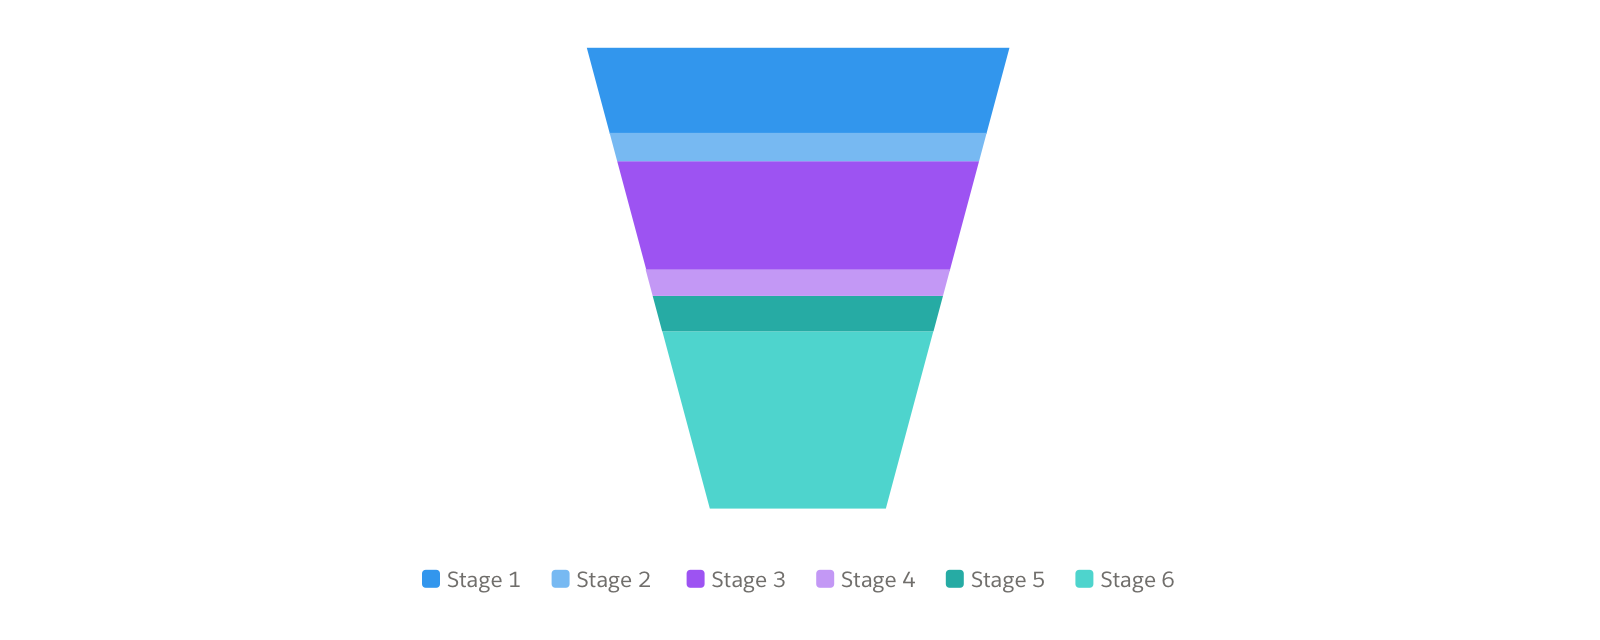 A funnel chart showing opportunity by stage